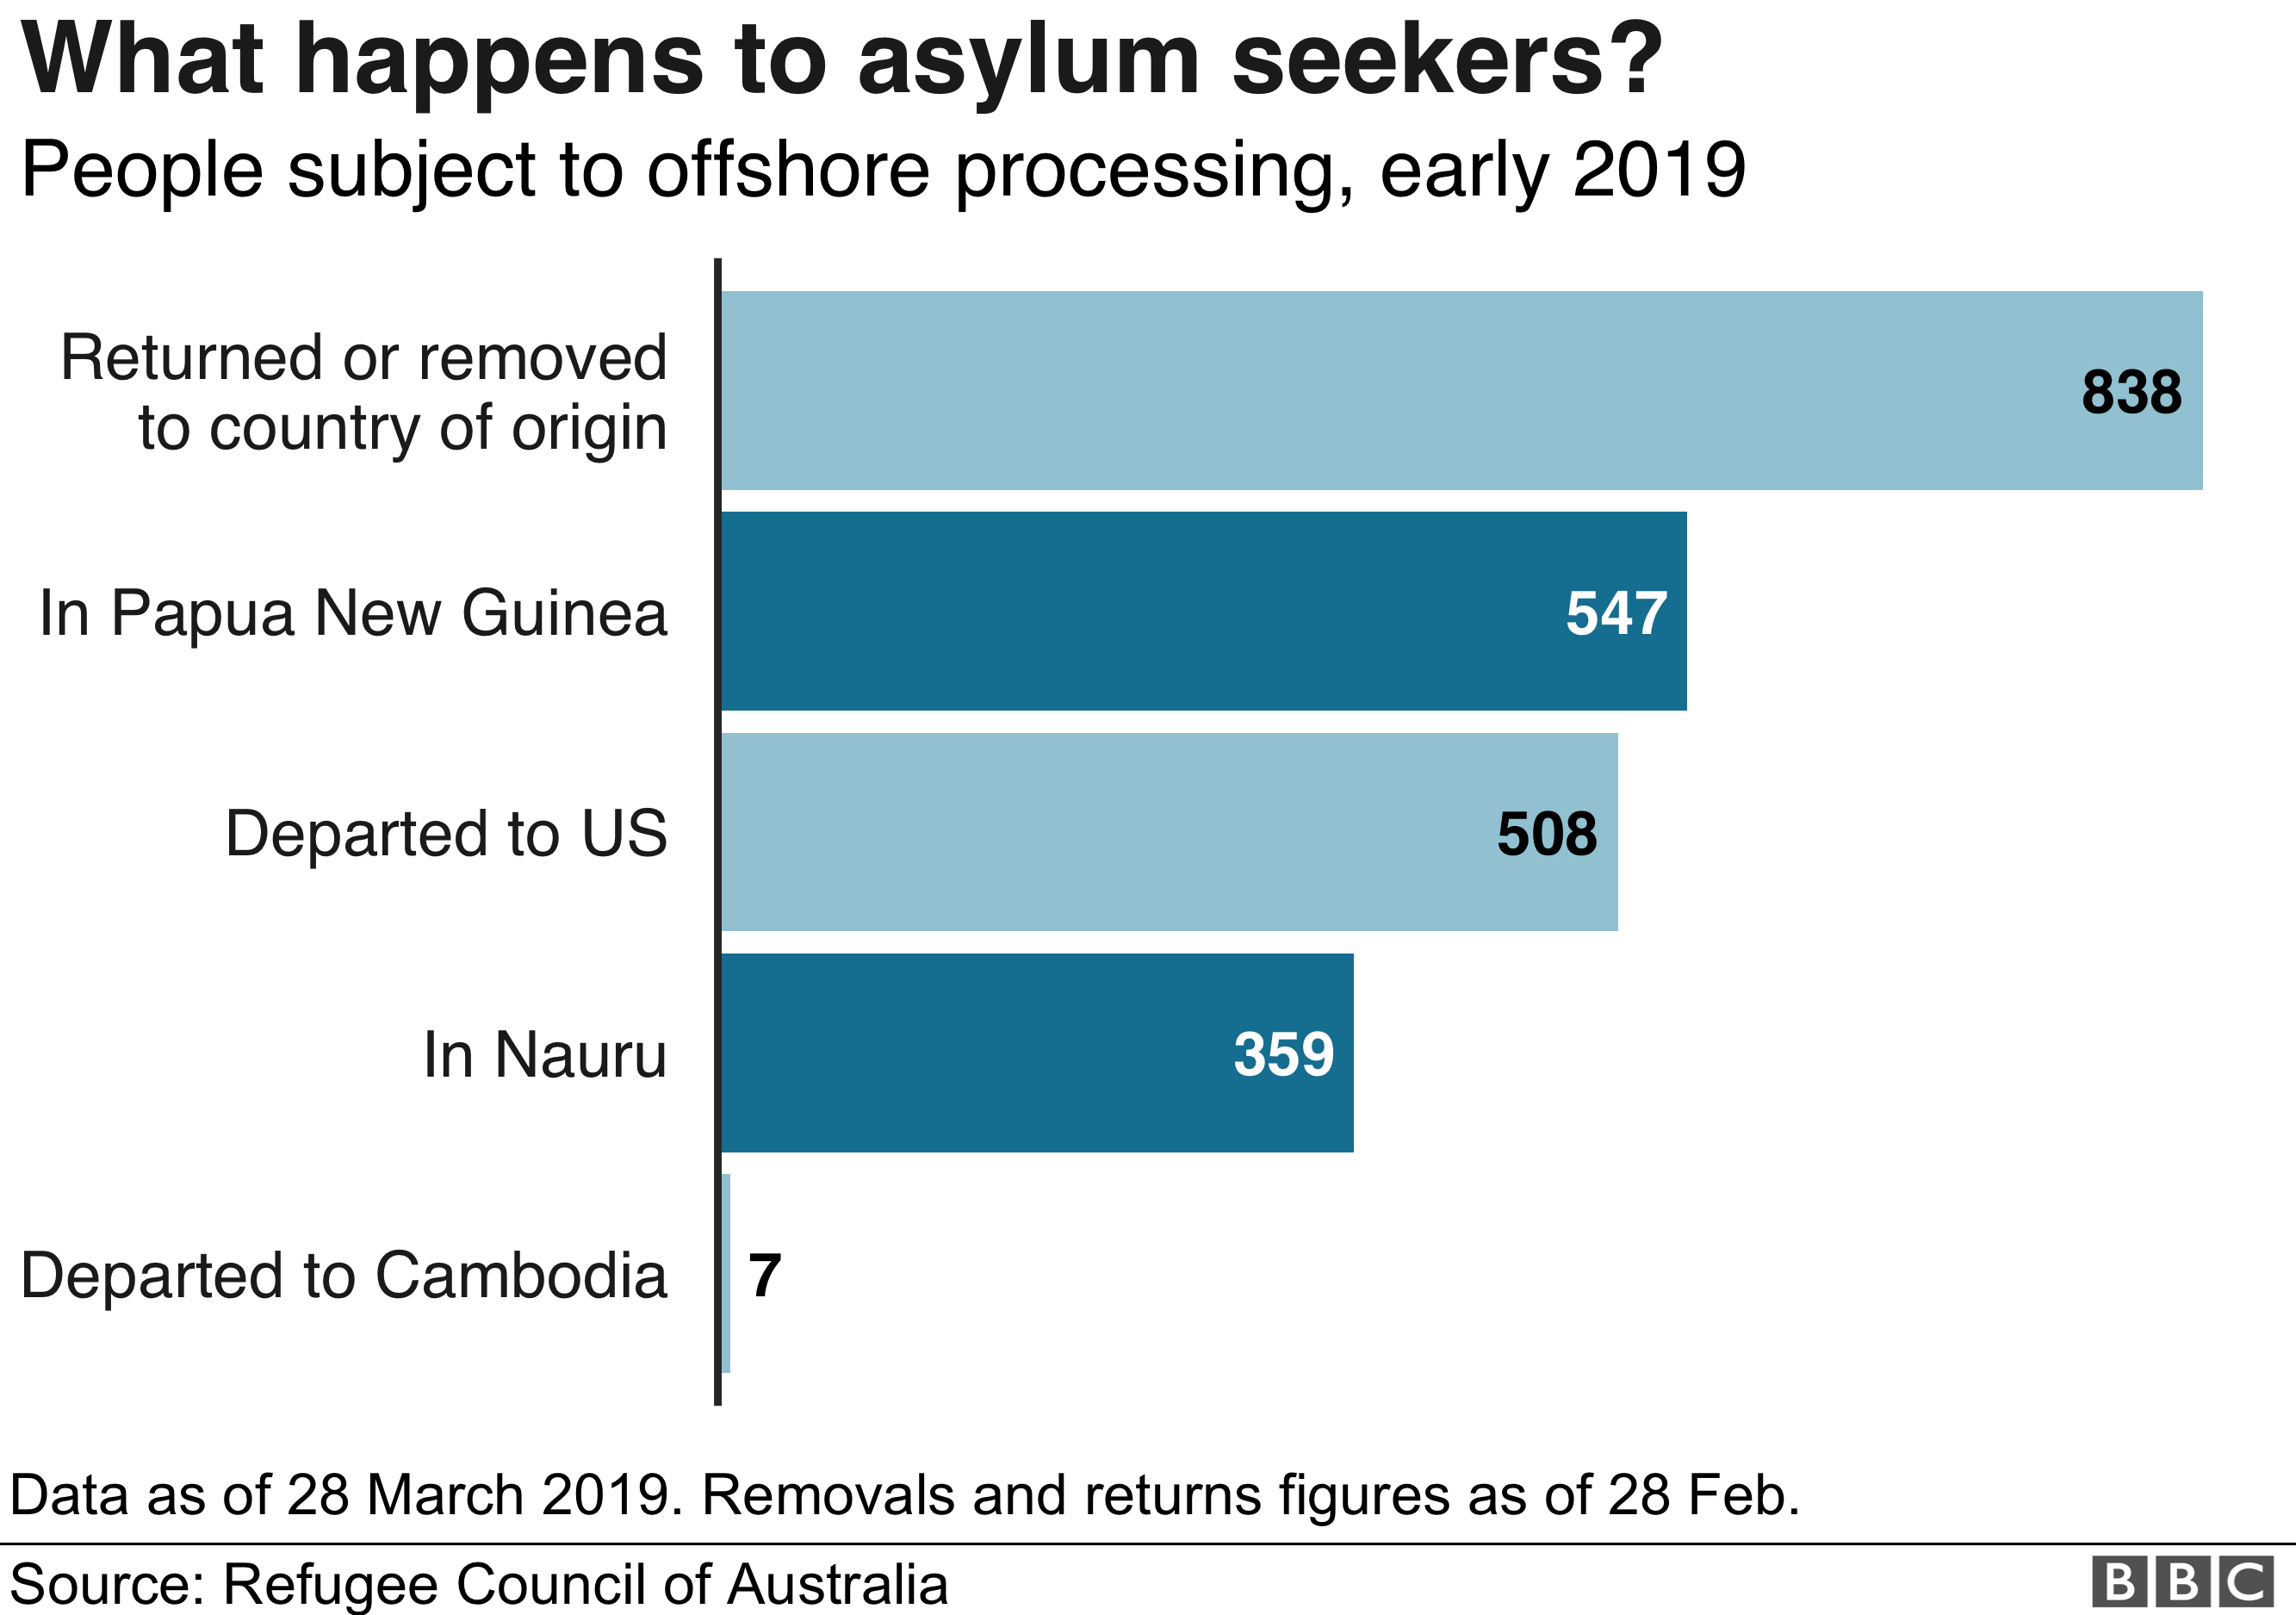 Chart: What happens to asylum seekers?